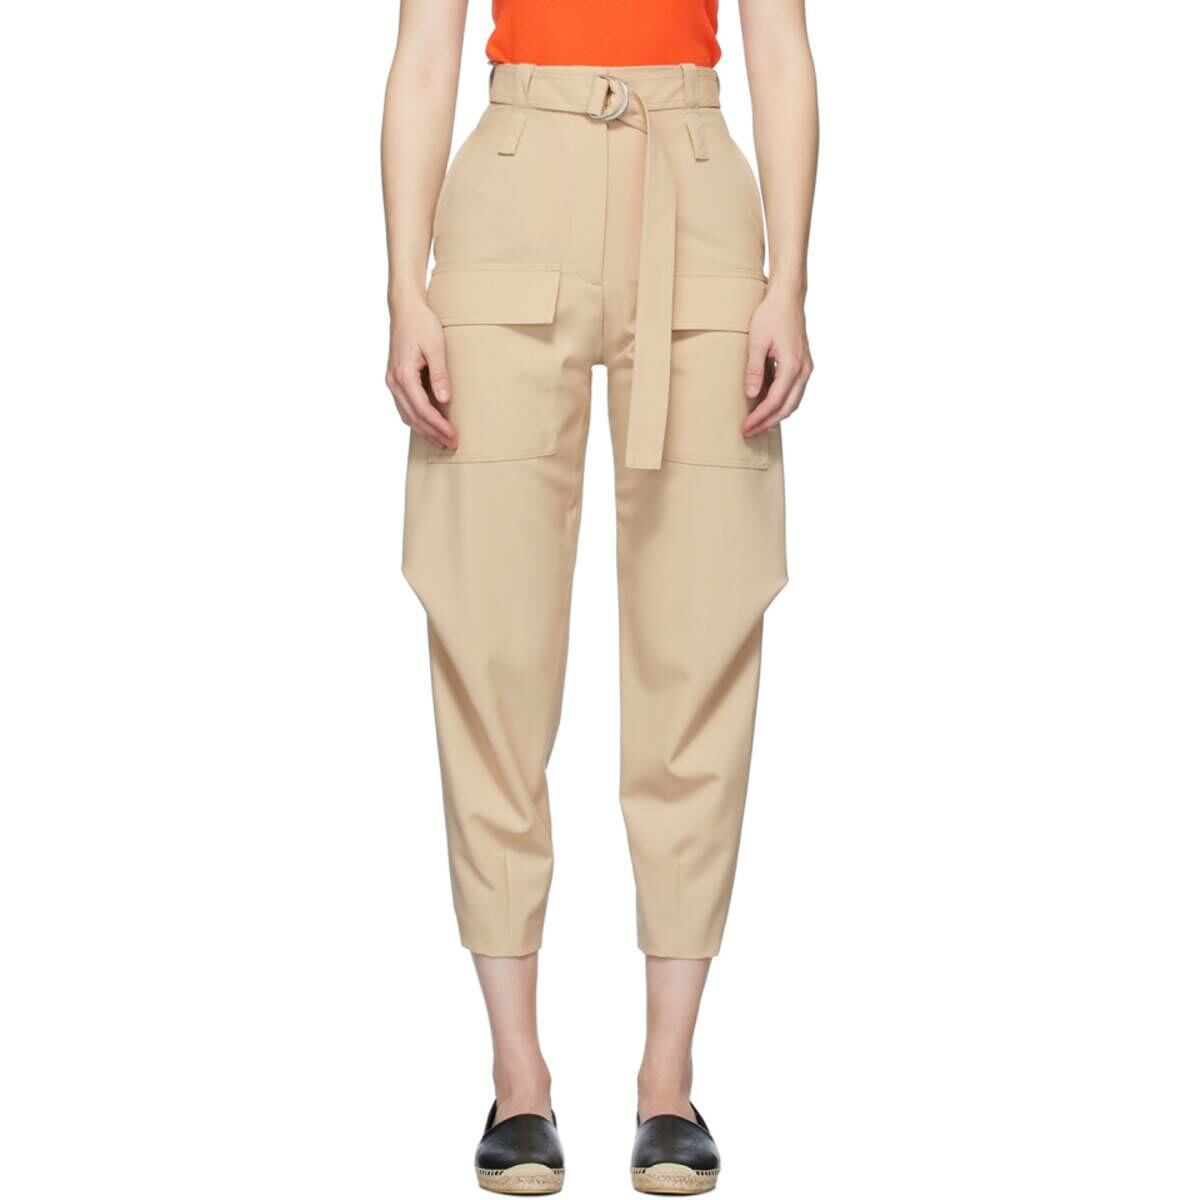 Stella McCartney Beige Wool Adaline Cocoon Trousers Ssense USA WOMEN Women FASHION Womens TROUSERS